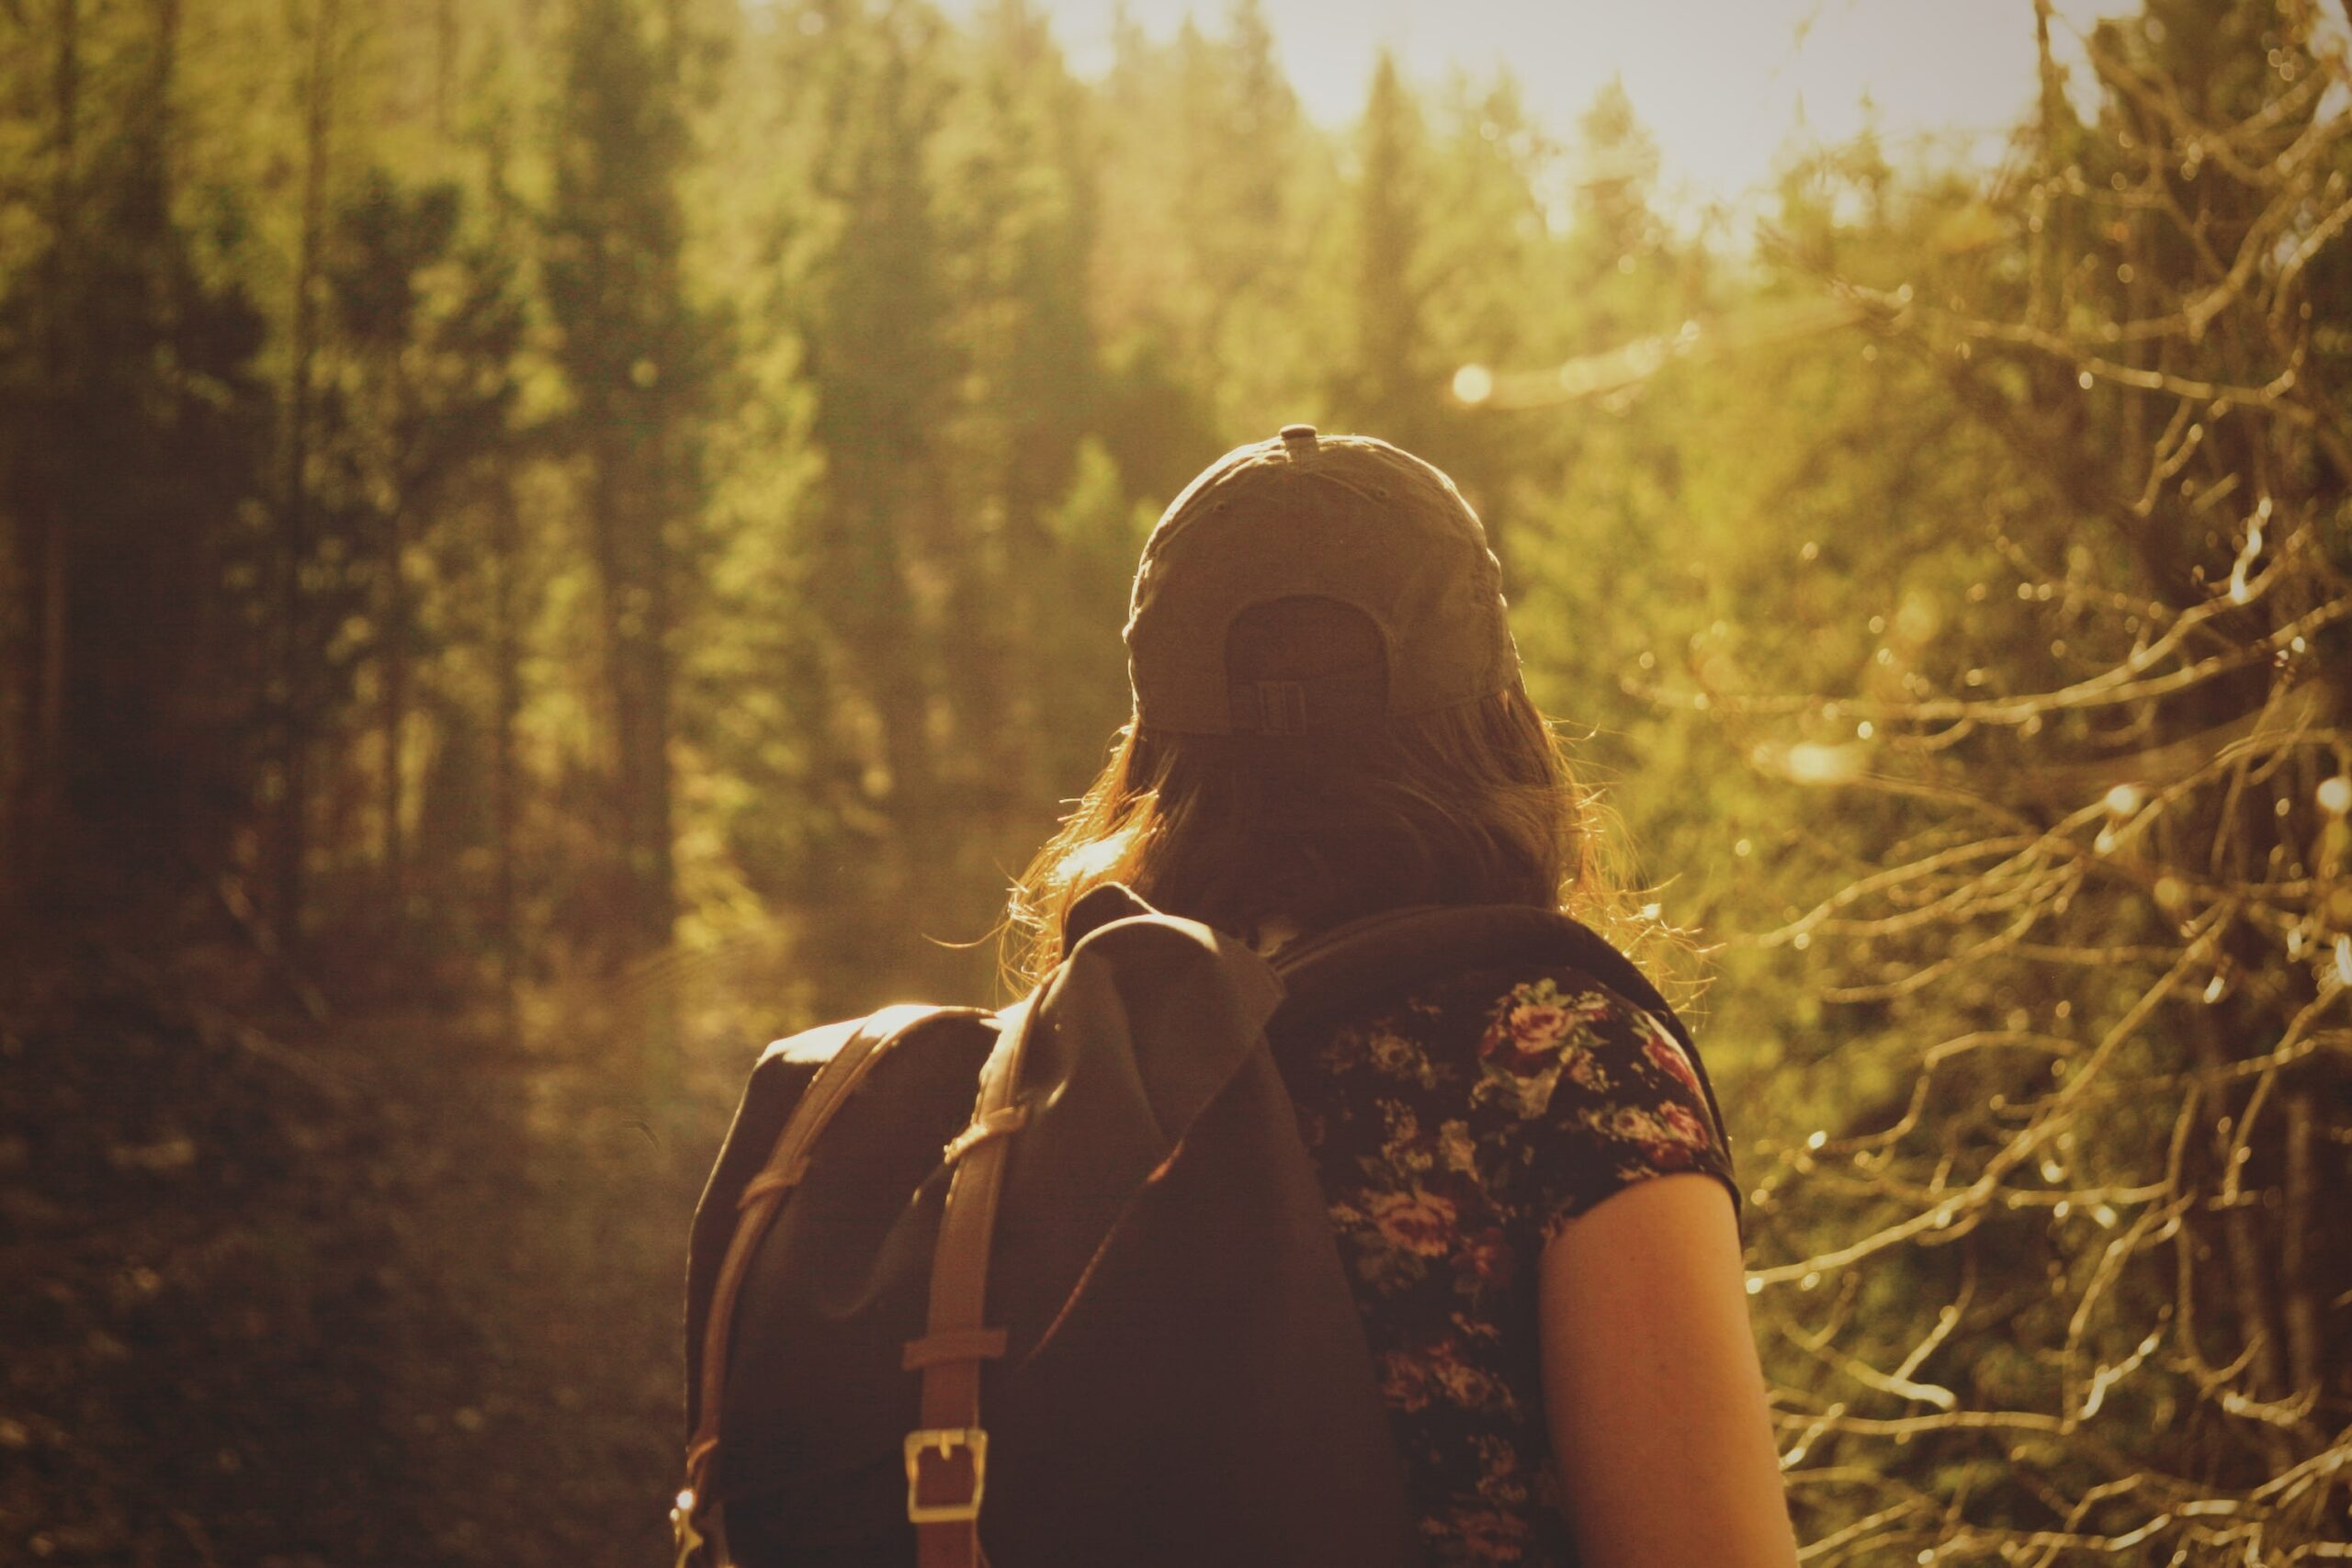 hiking safety tips for women featured image